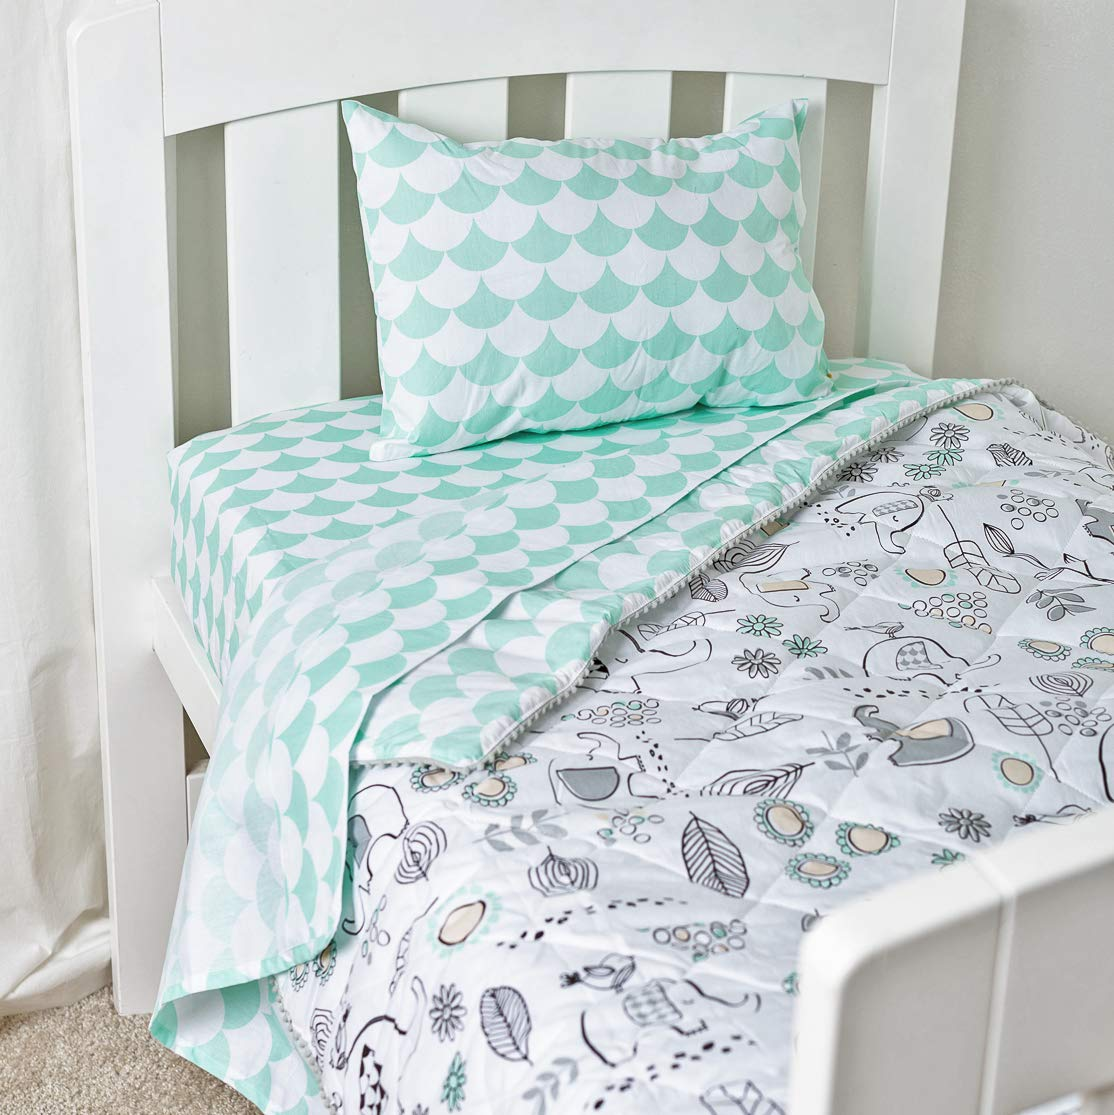 /… Sparrow Pattern Complete Sheet Set with 1 Flat Sheet Sparrow Collection and 1 Pillow Case 1 Fitted Sheet Lolli Living Twin Bedding Sheet Set